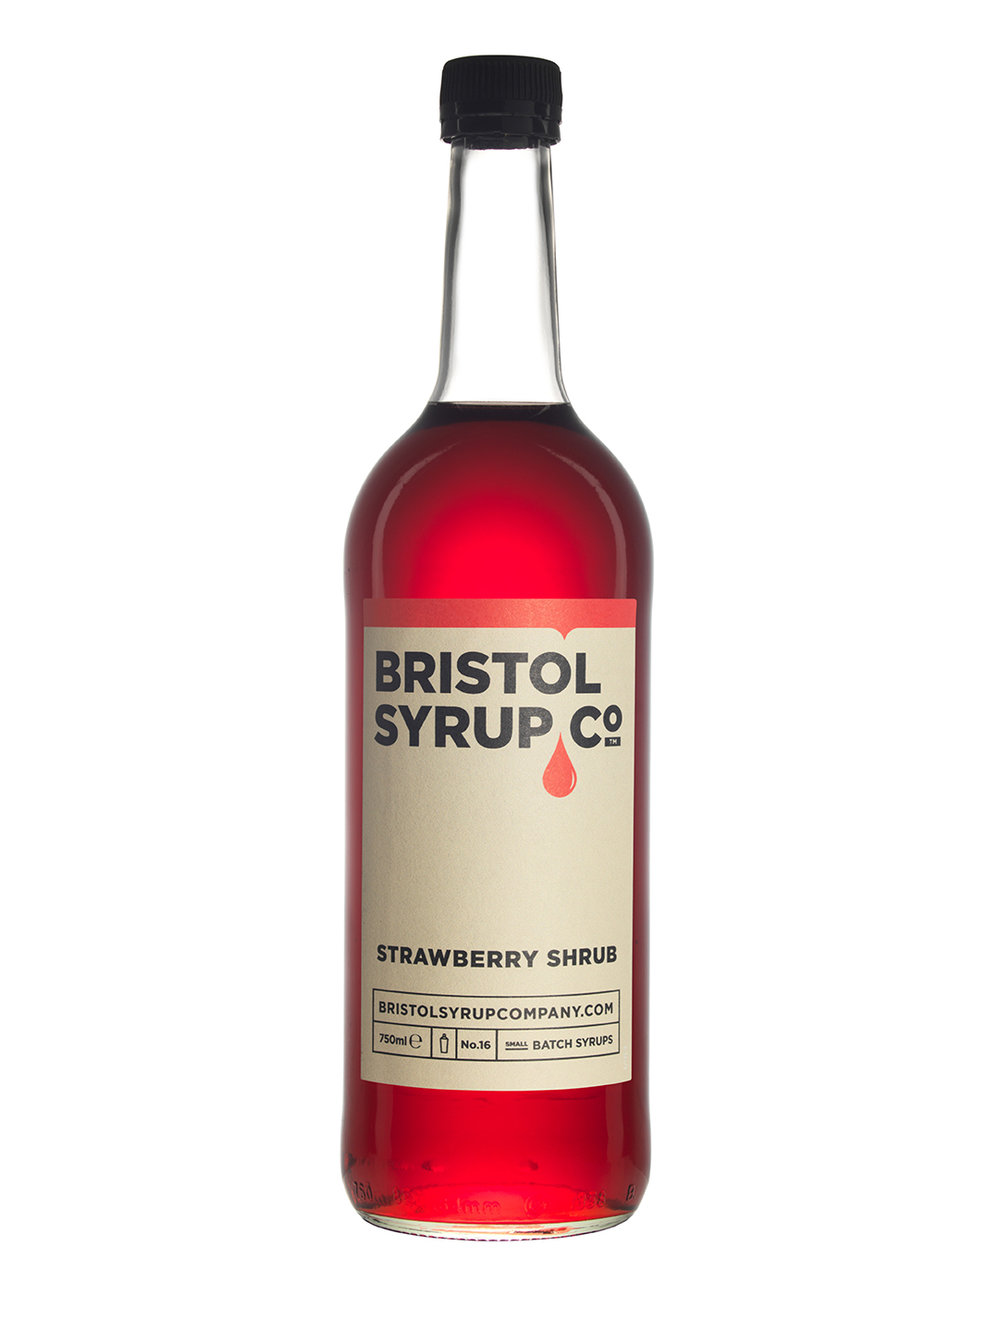 Bristol Syrup Co - Strawberry Shrub no ref WEB.jpg